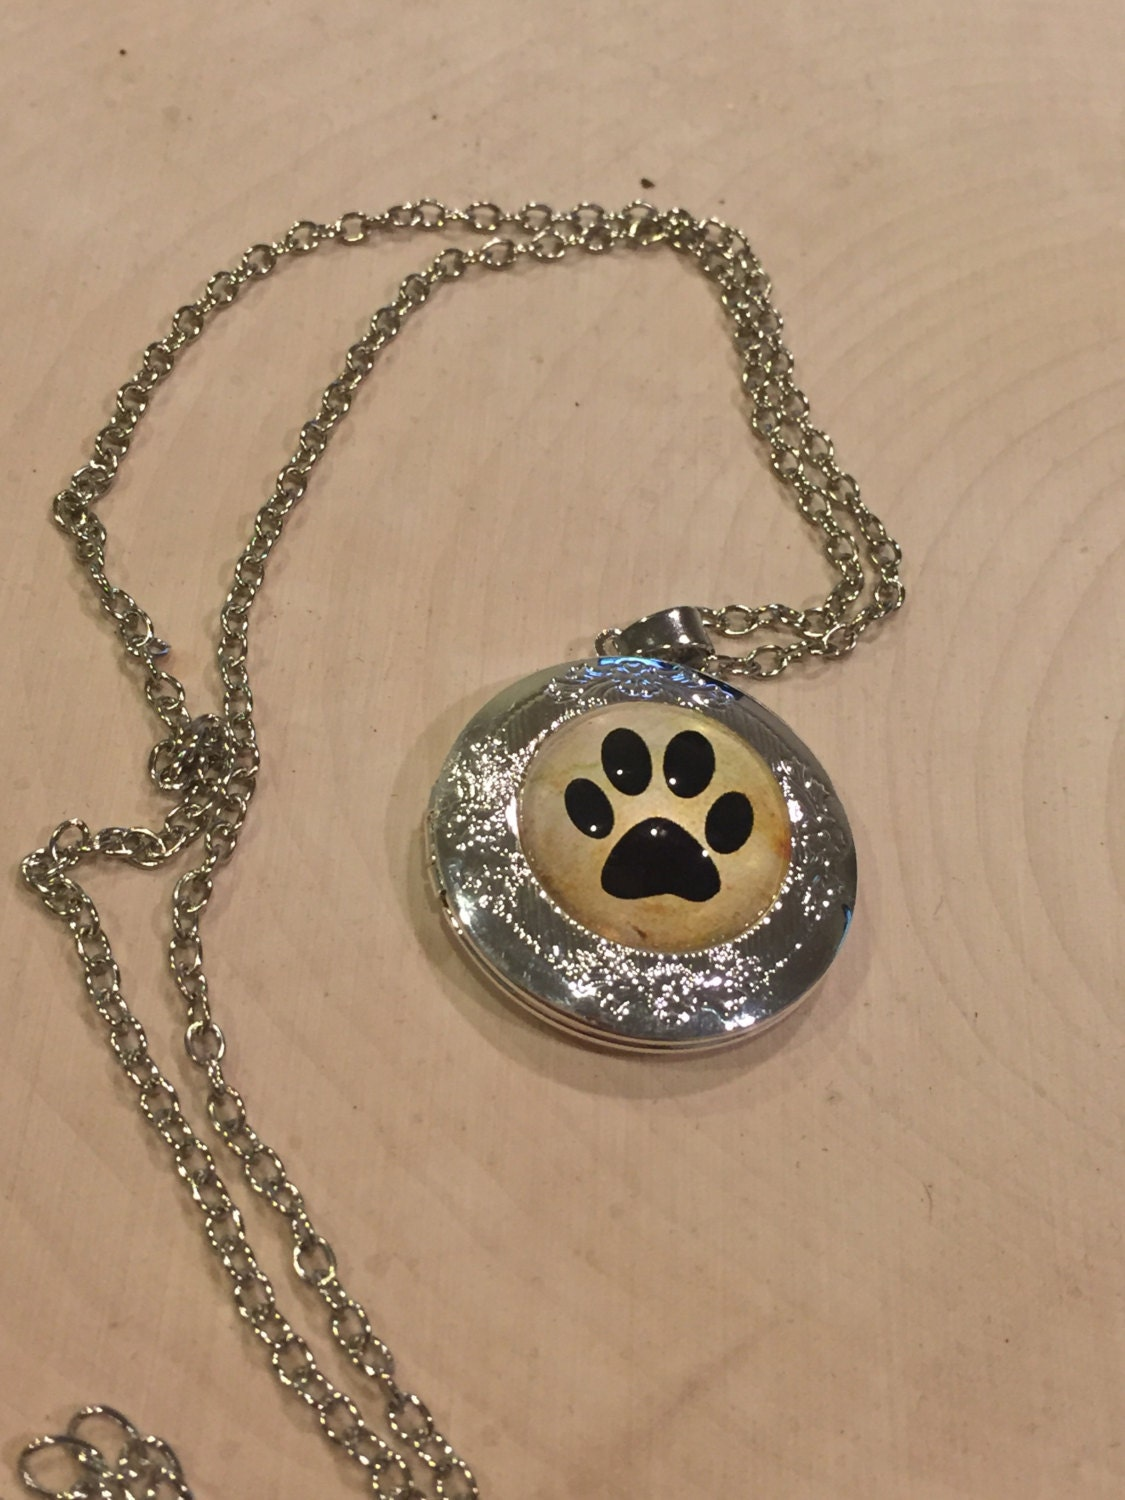 Silver Paw Cavachons: Dog Locket Necklace Silver Color Paw Print